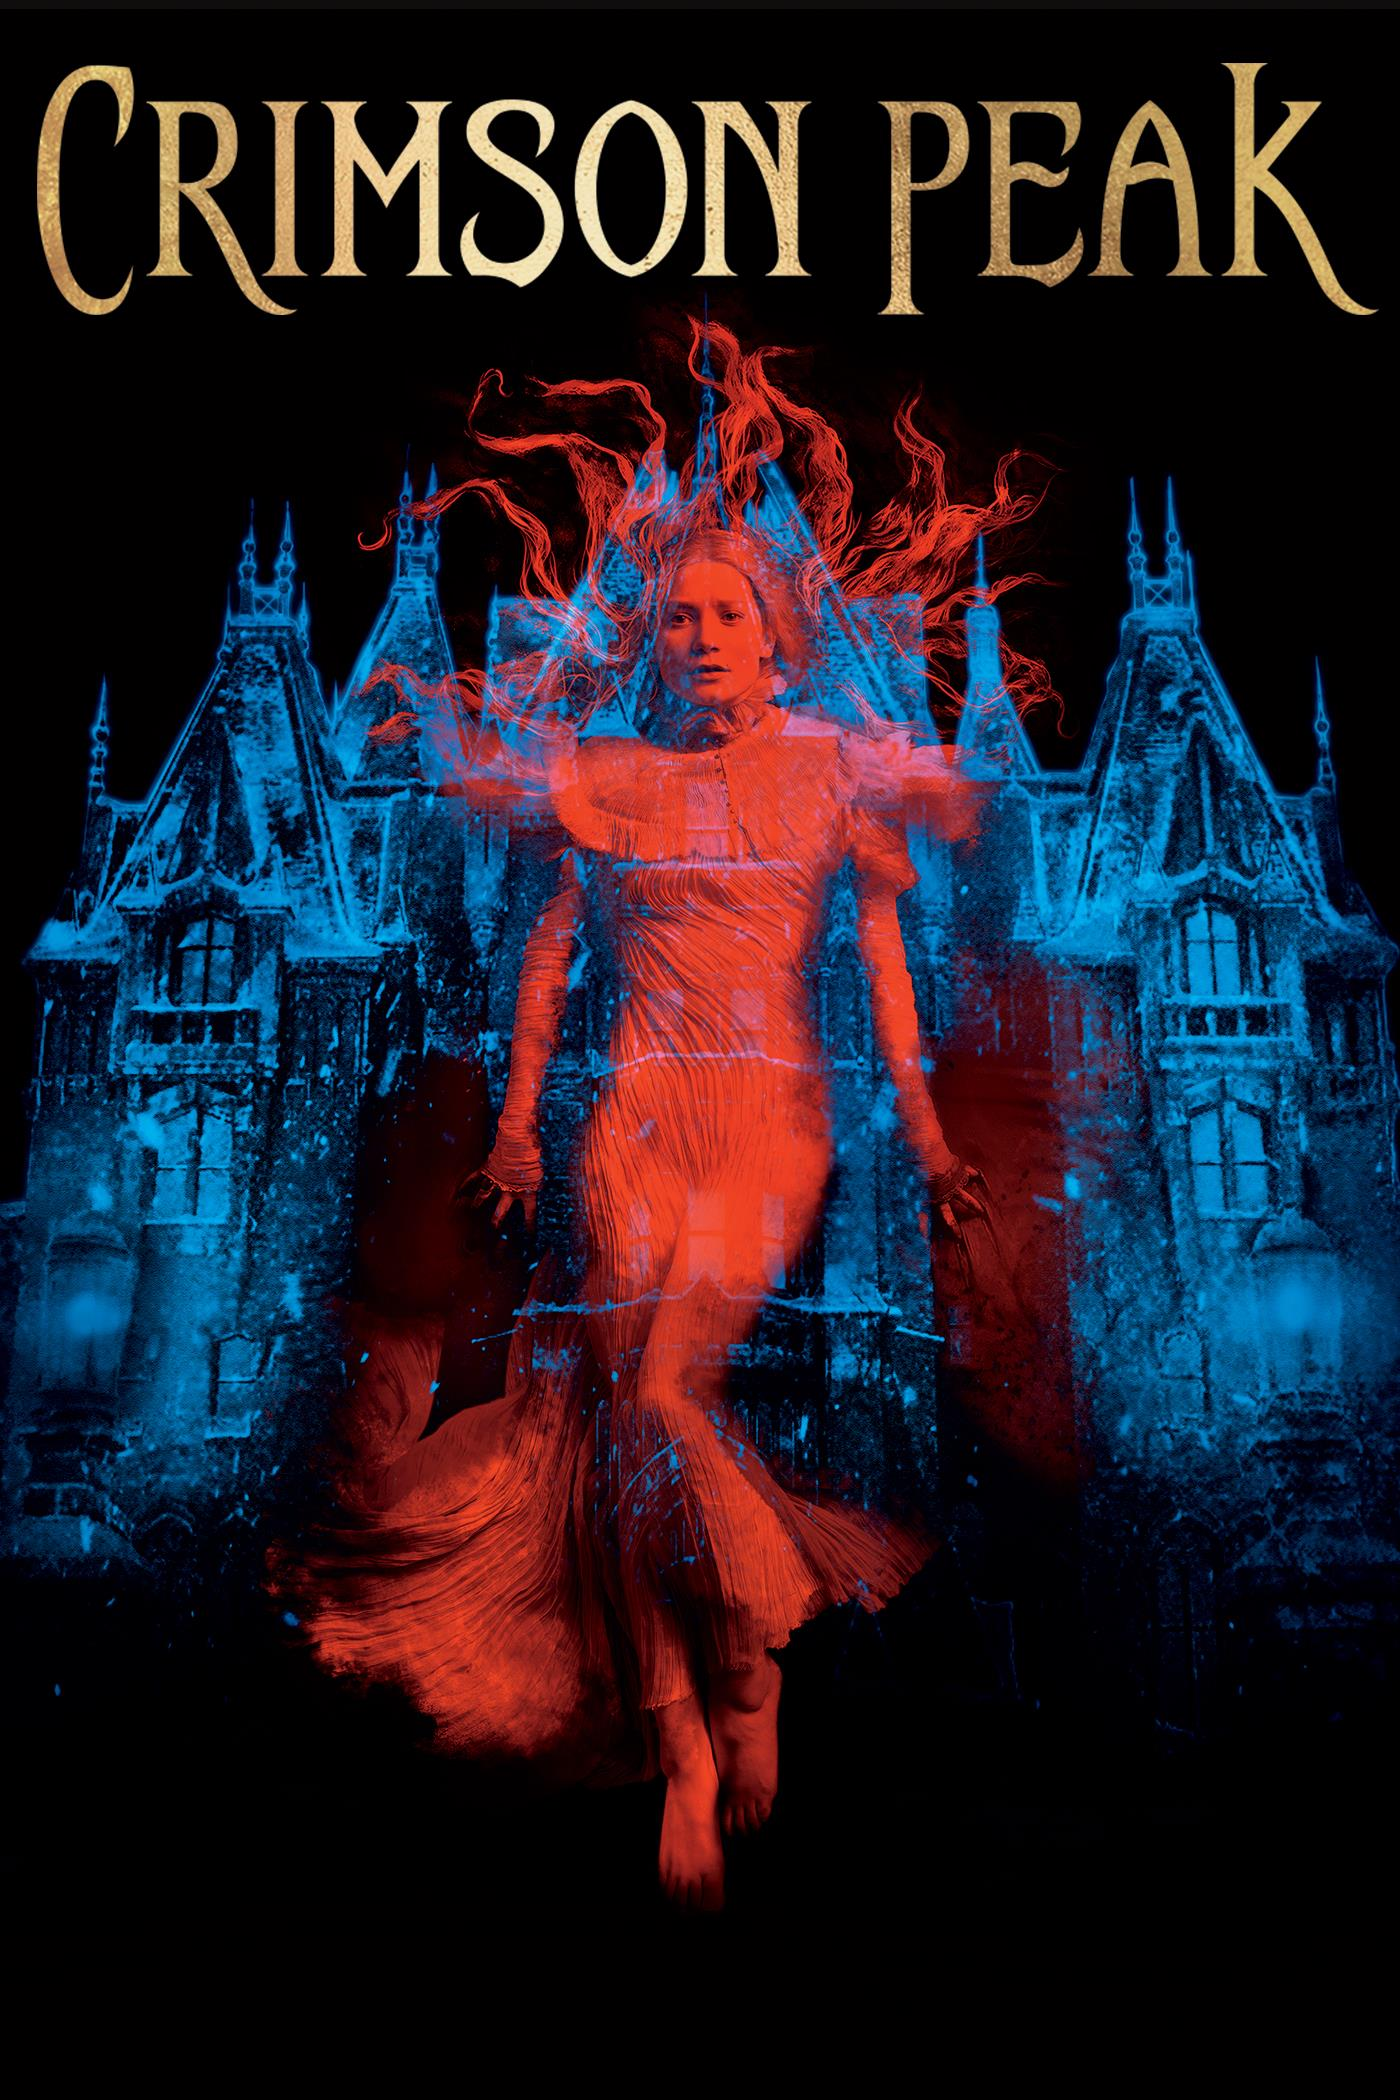 Crimson Peak - Now Playing on Demand